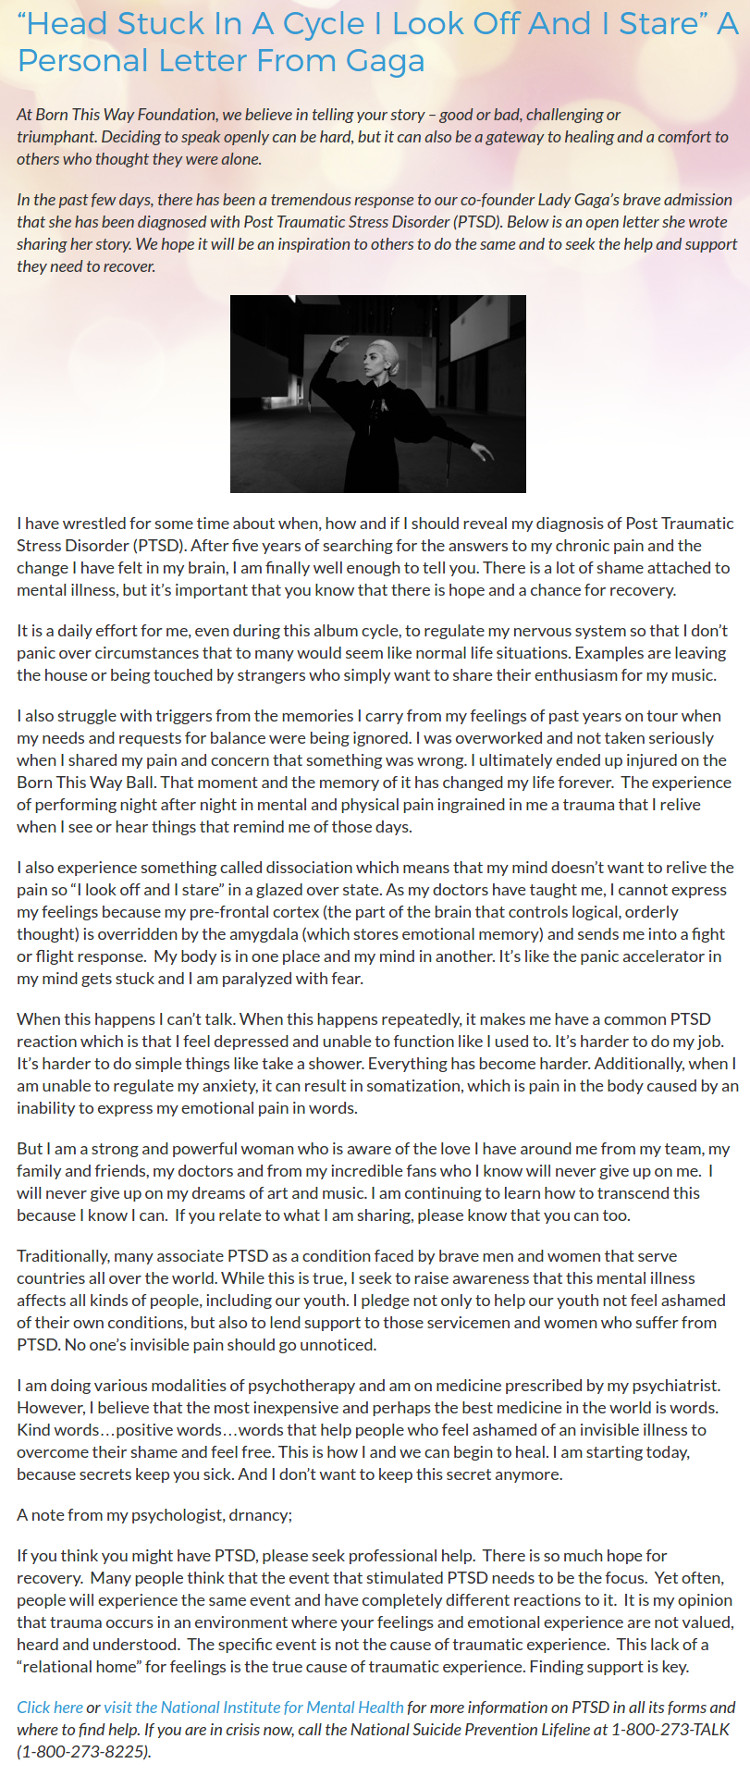 Lady Gaga Open Letter